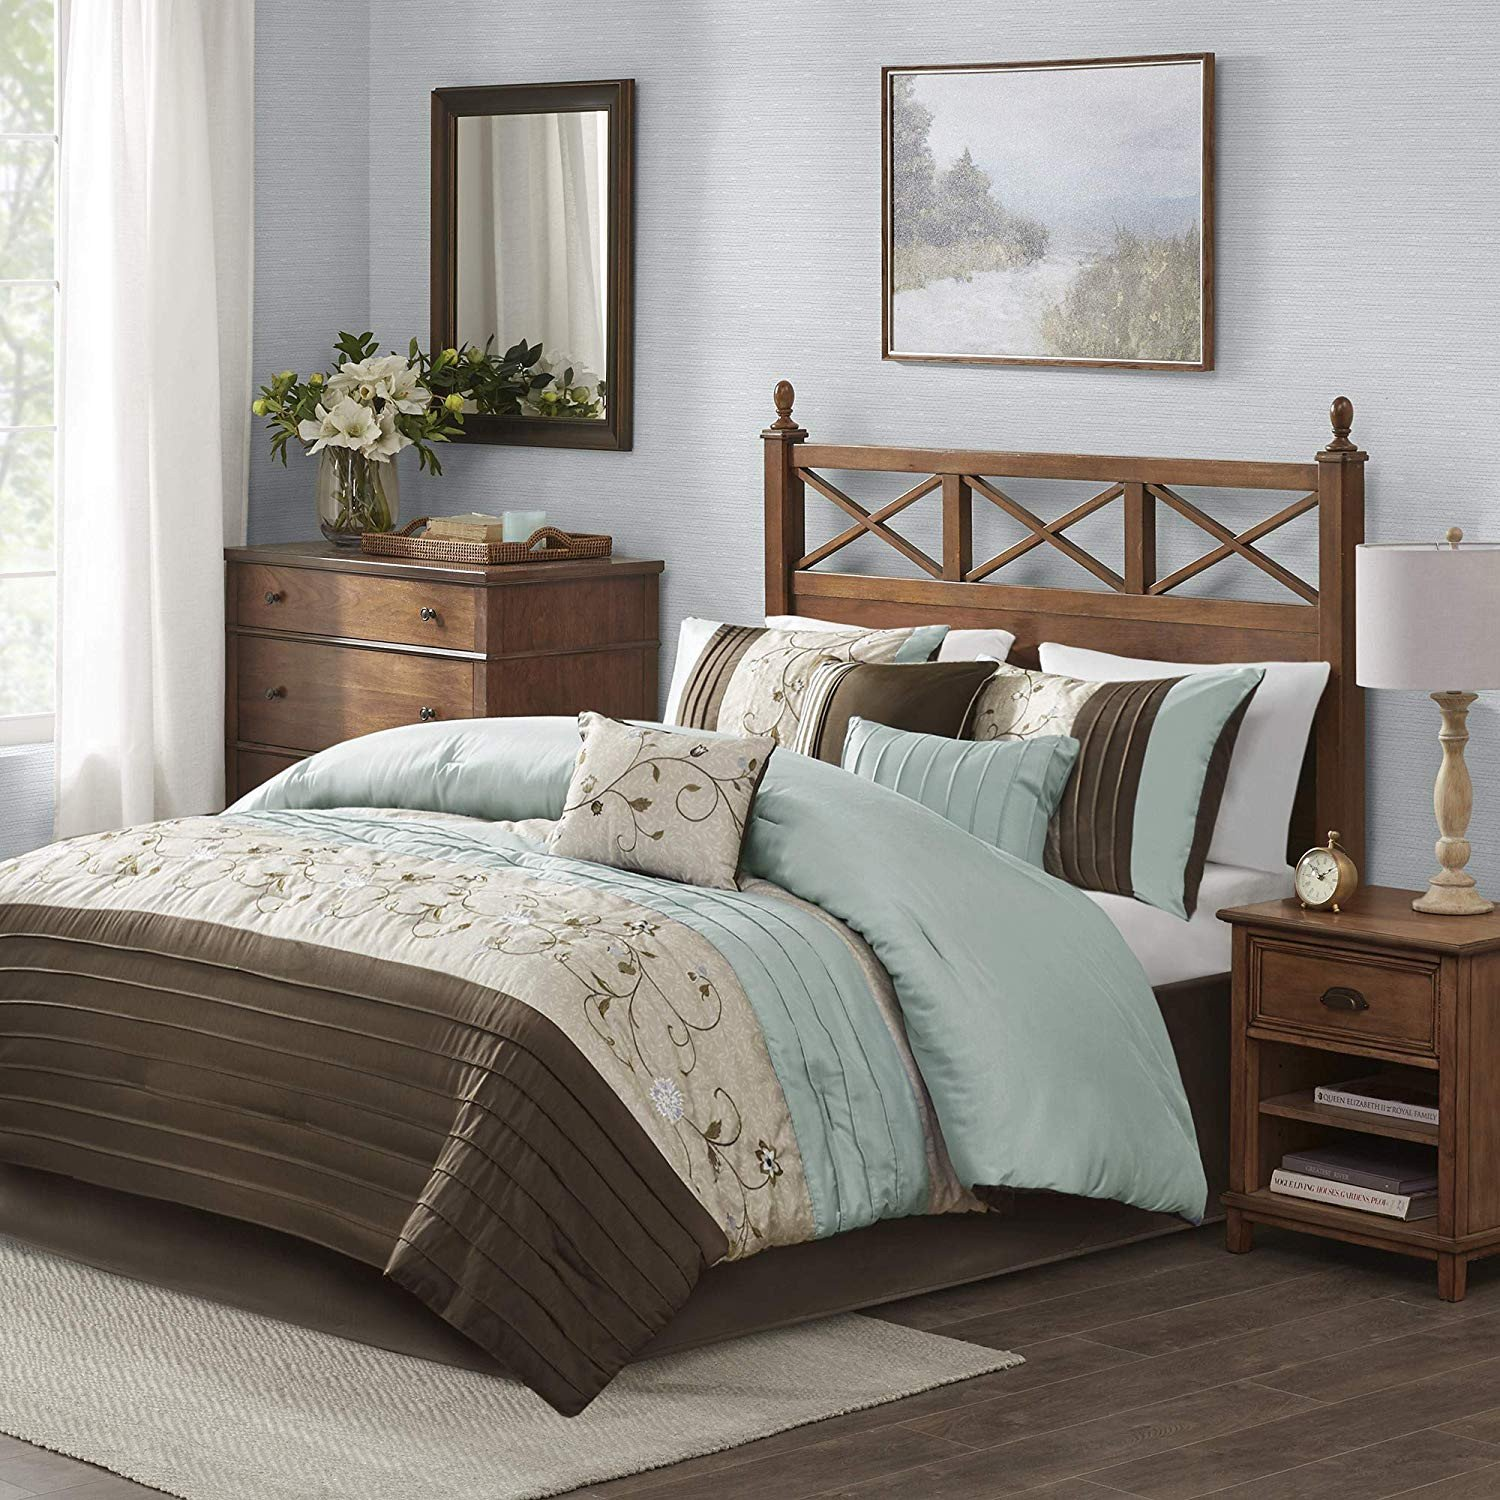 7 Piece Bedroom Set King Fresh Madison Park Serene 7 Piece forter Set King Blue